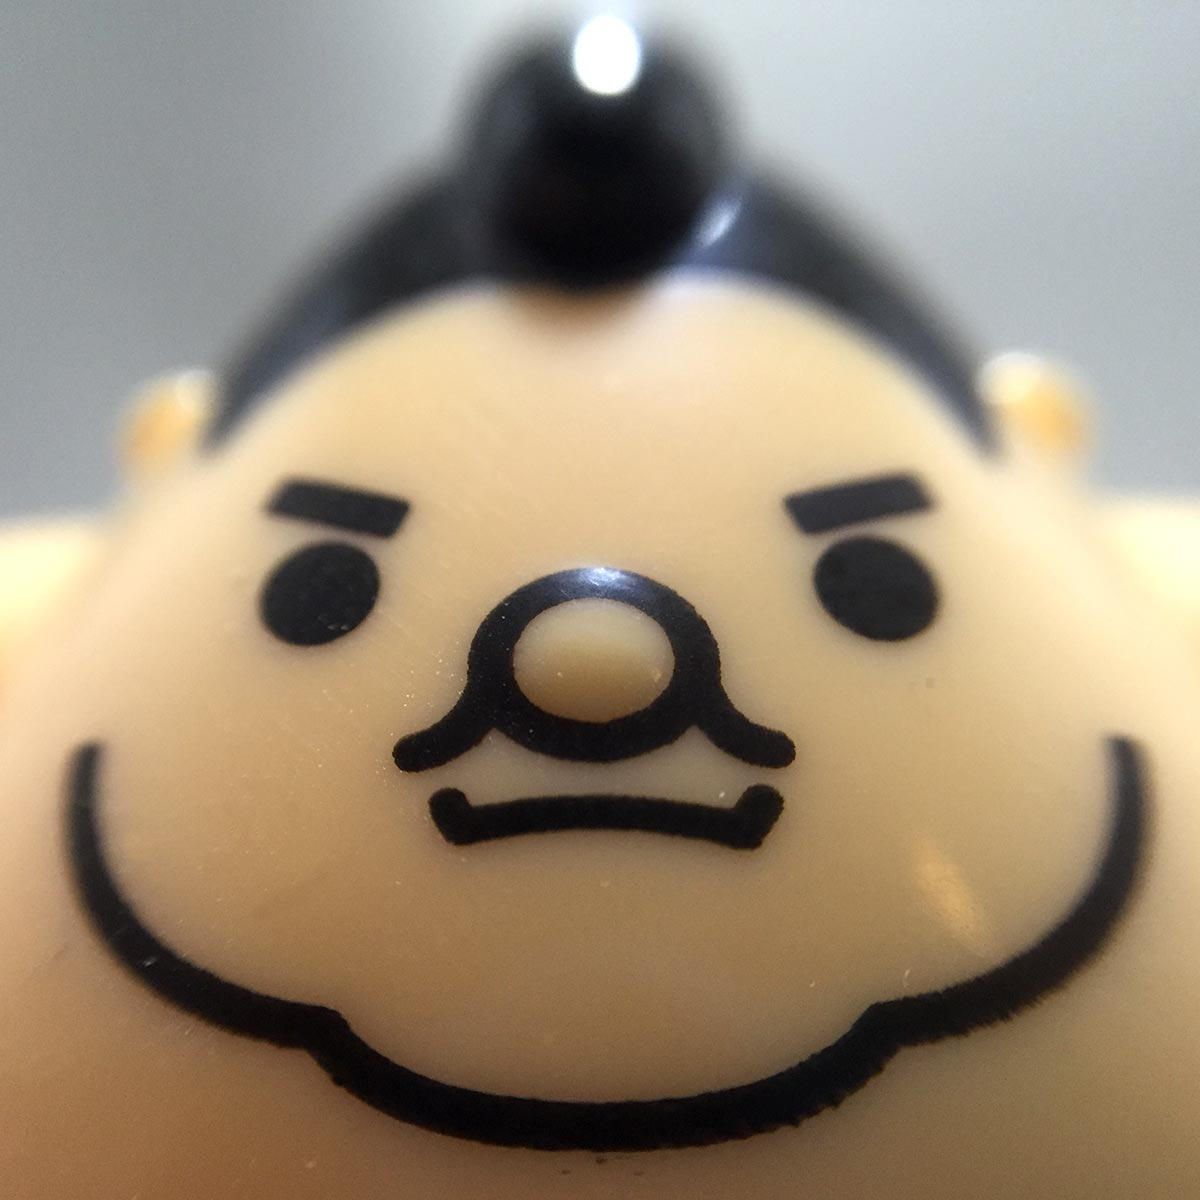 Solar Powered Swinging Sumo Wrestler - Macro face view